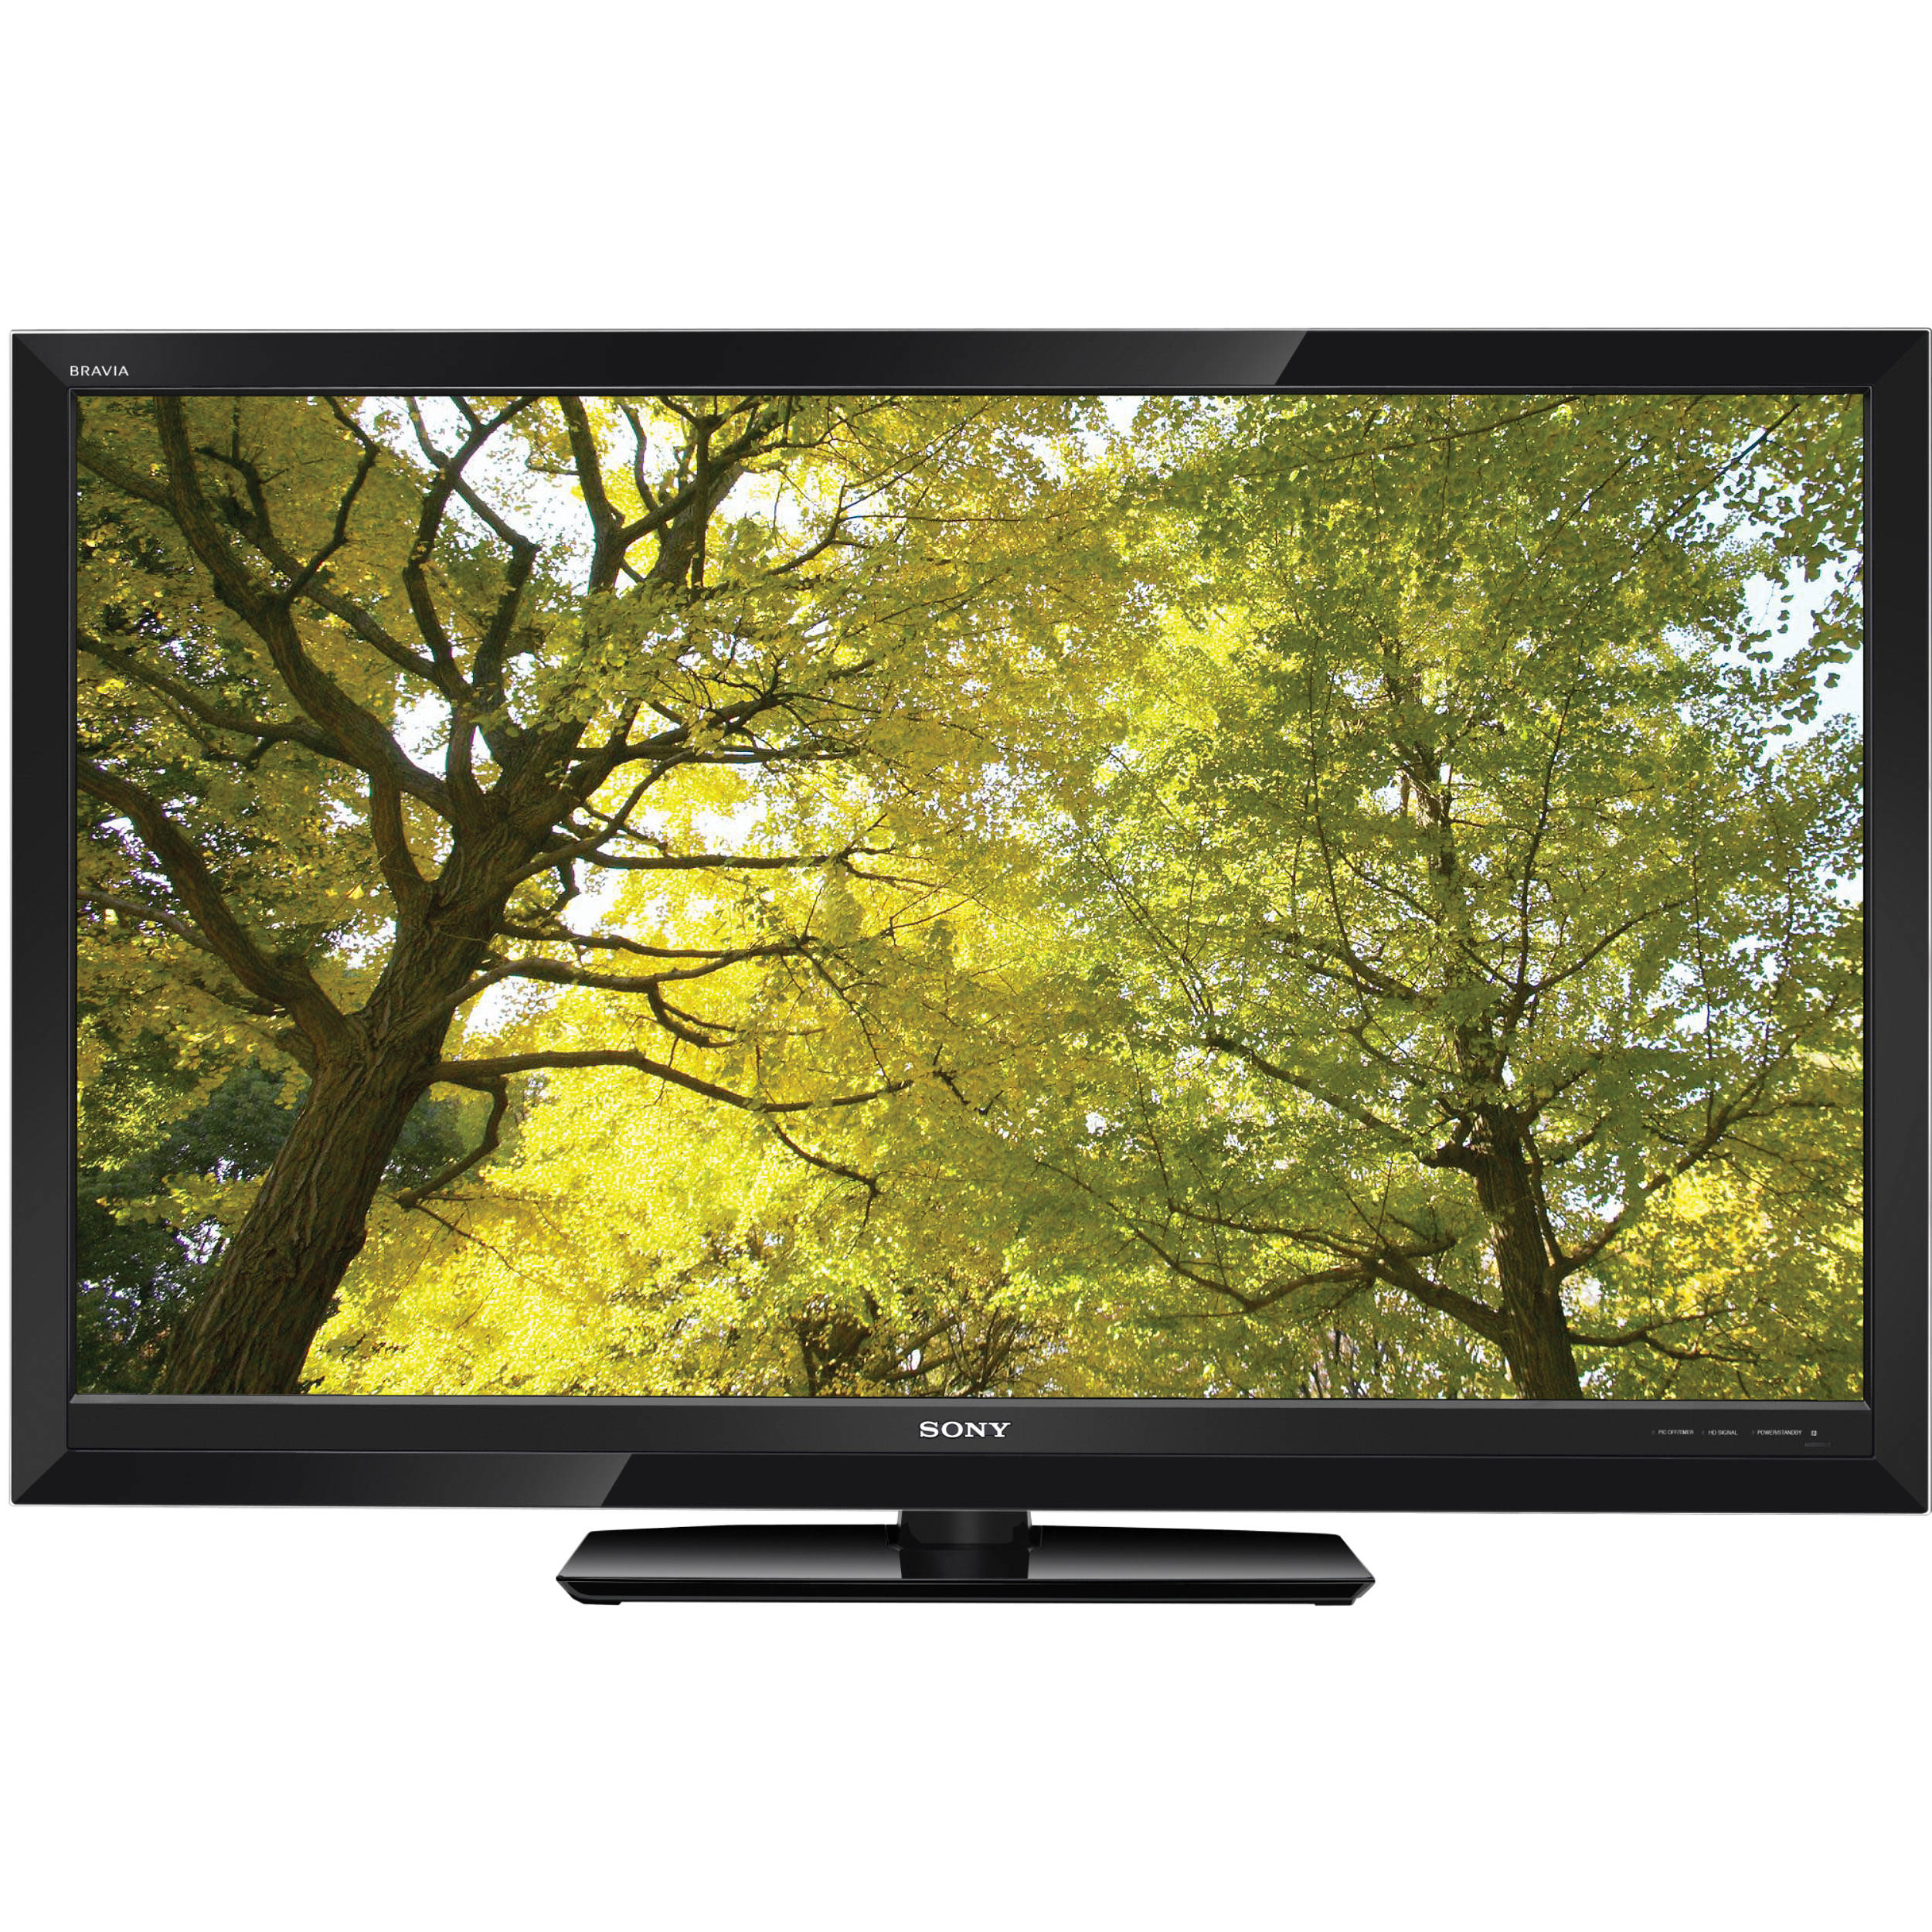 sony bravia Just wanted to know what is the main difference between the two looking to purchase one for the bedroom.